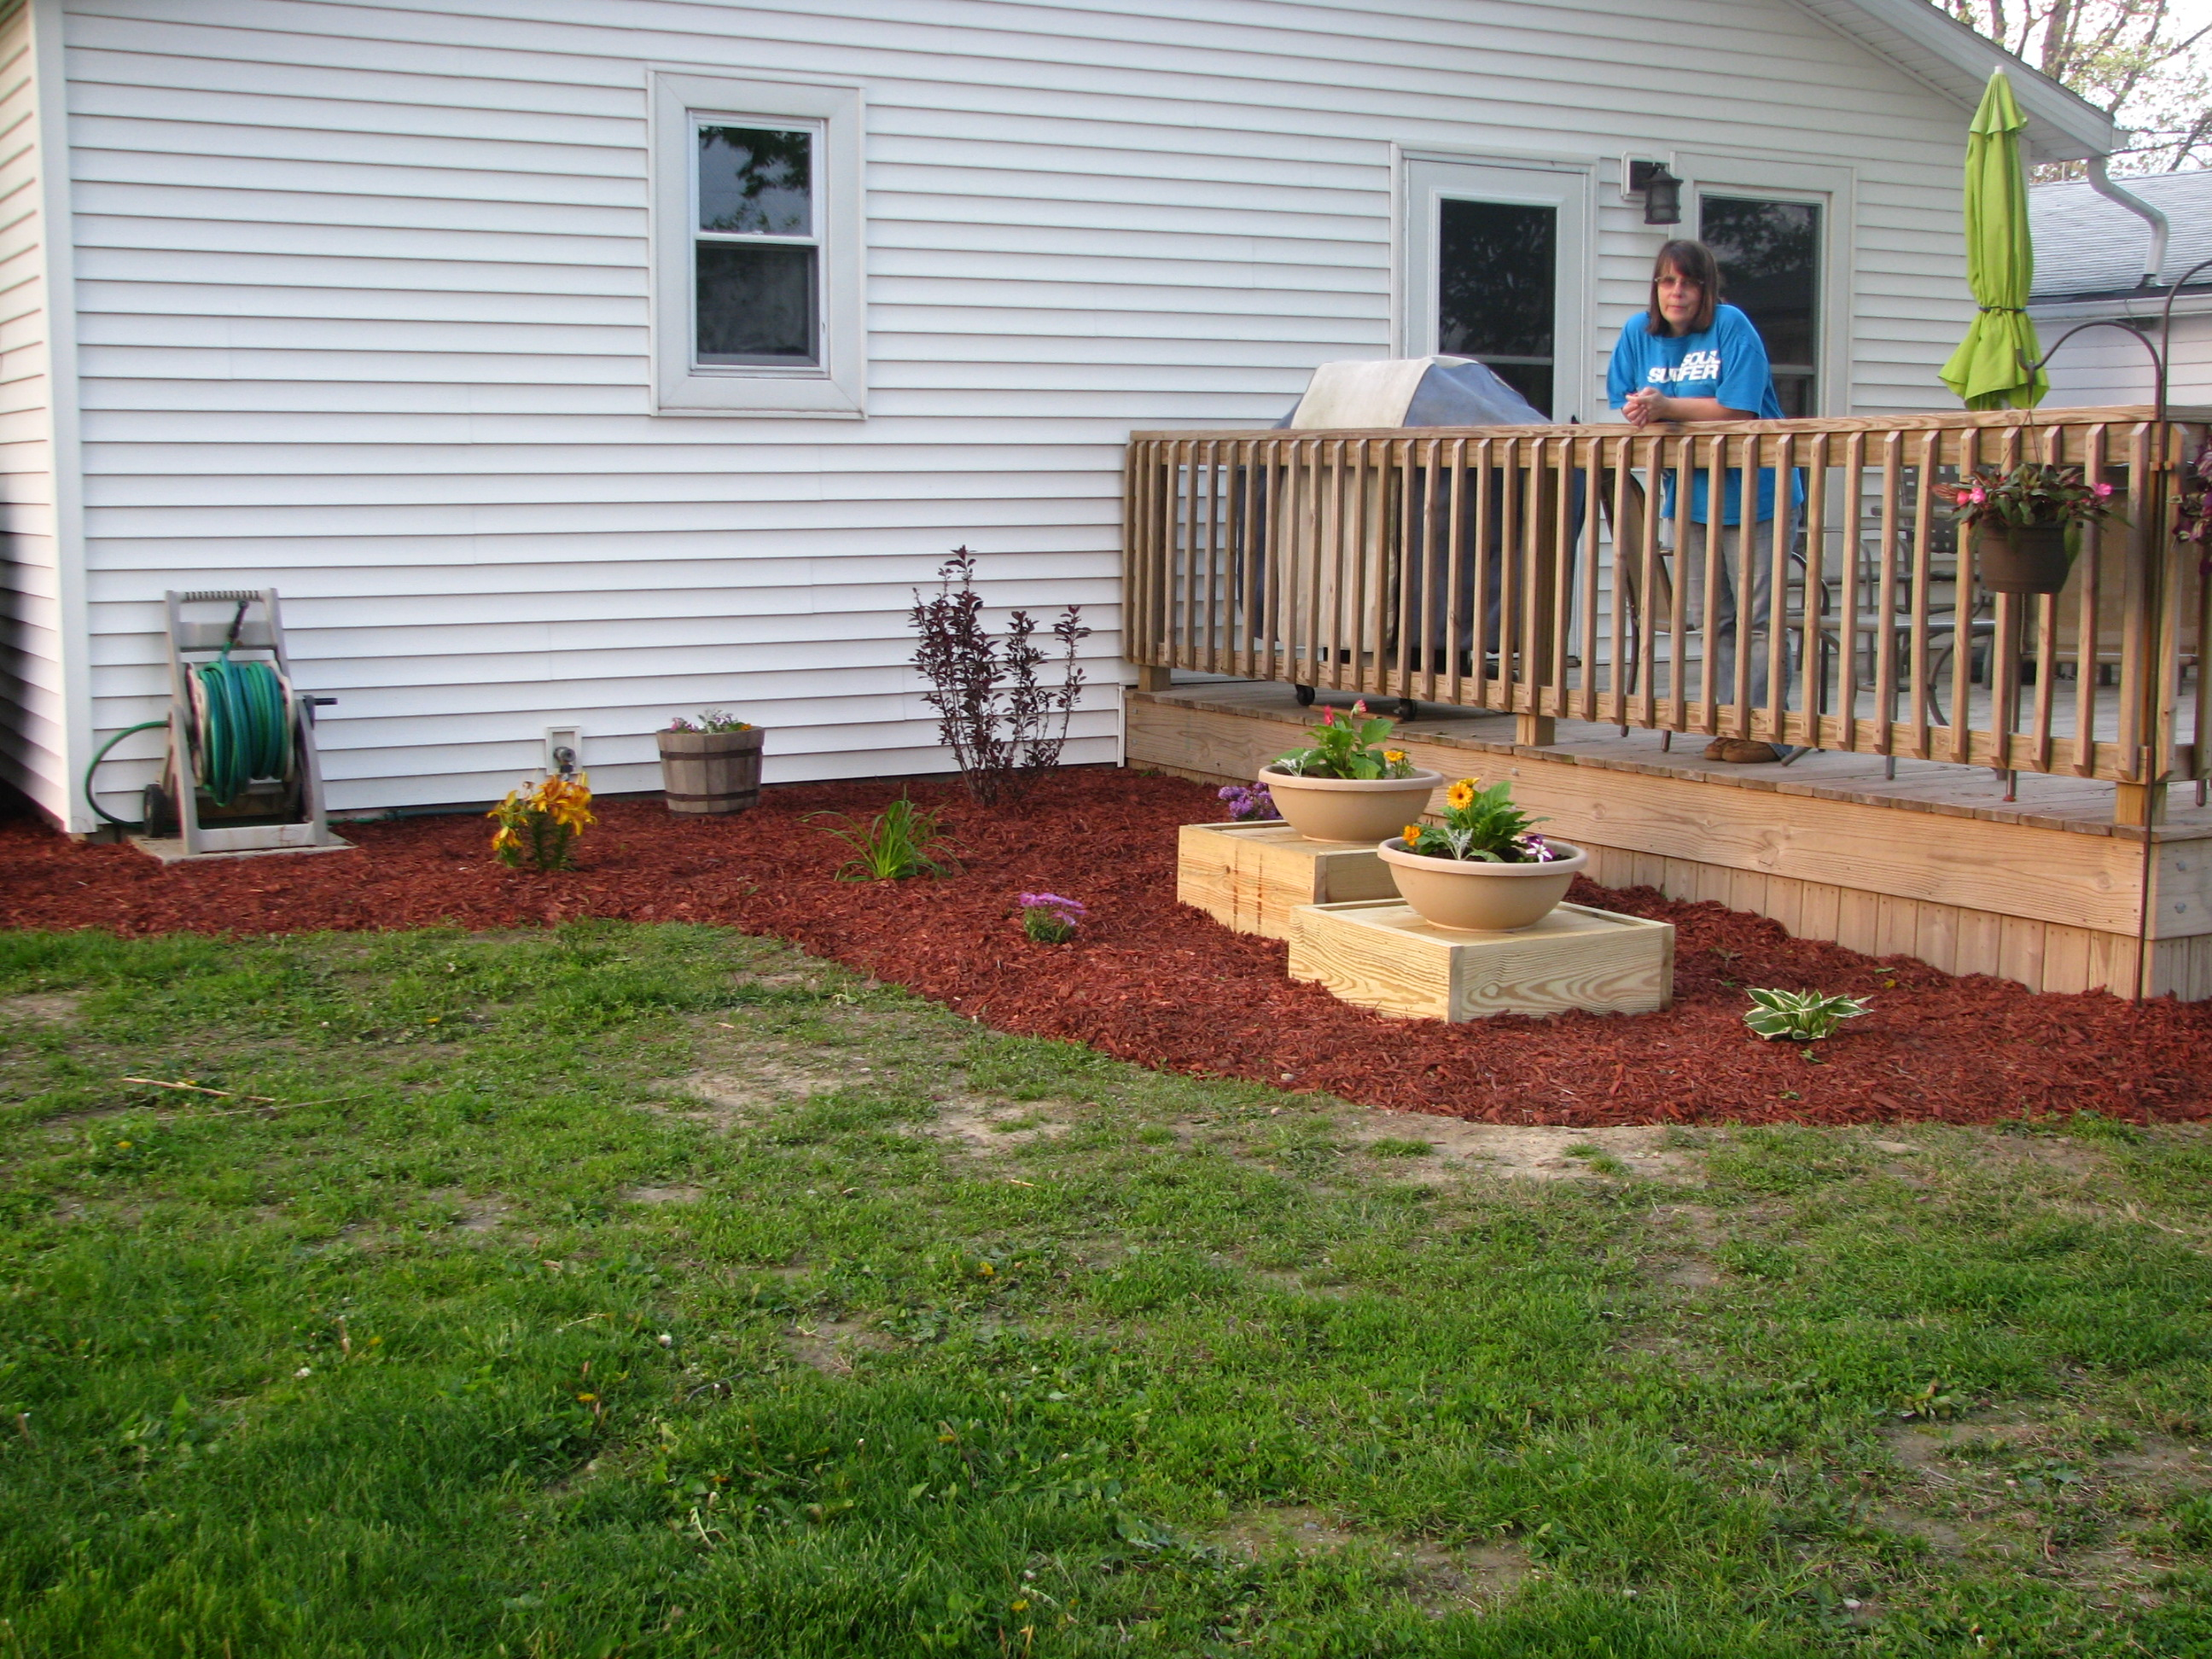 Landscaping Around The House : I wish could say it was complete ilife journey